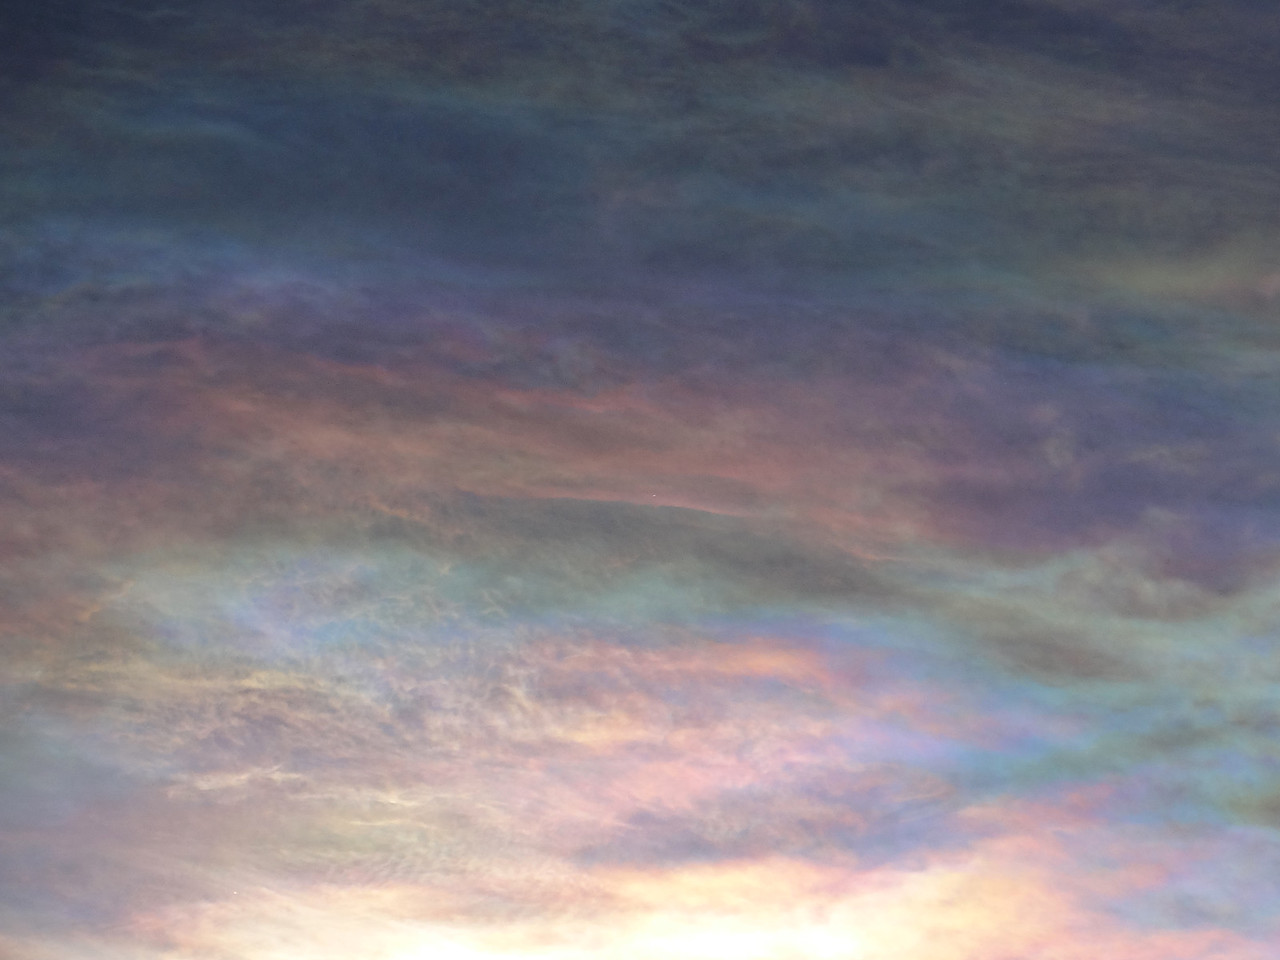 If you've never seen iridescence in a cloud, a photo of it can look quite unbelievable.